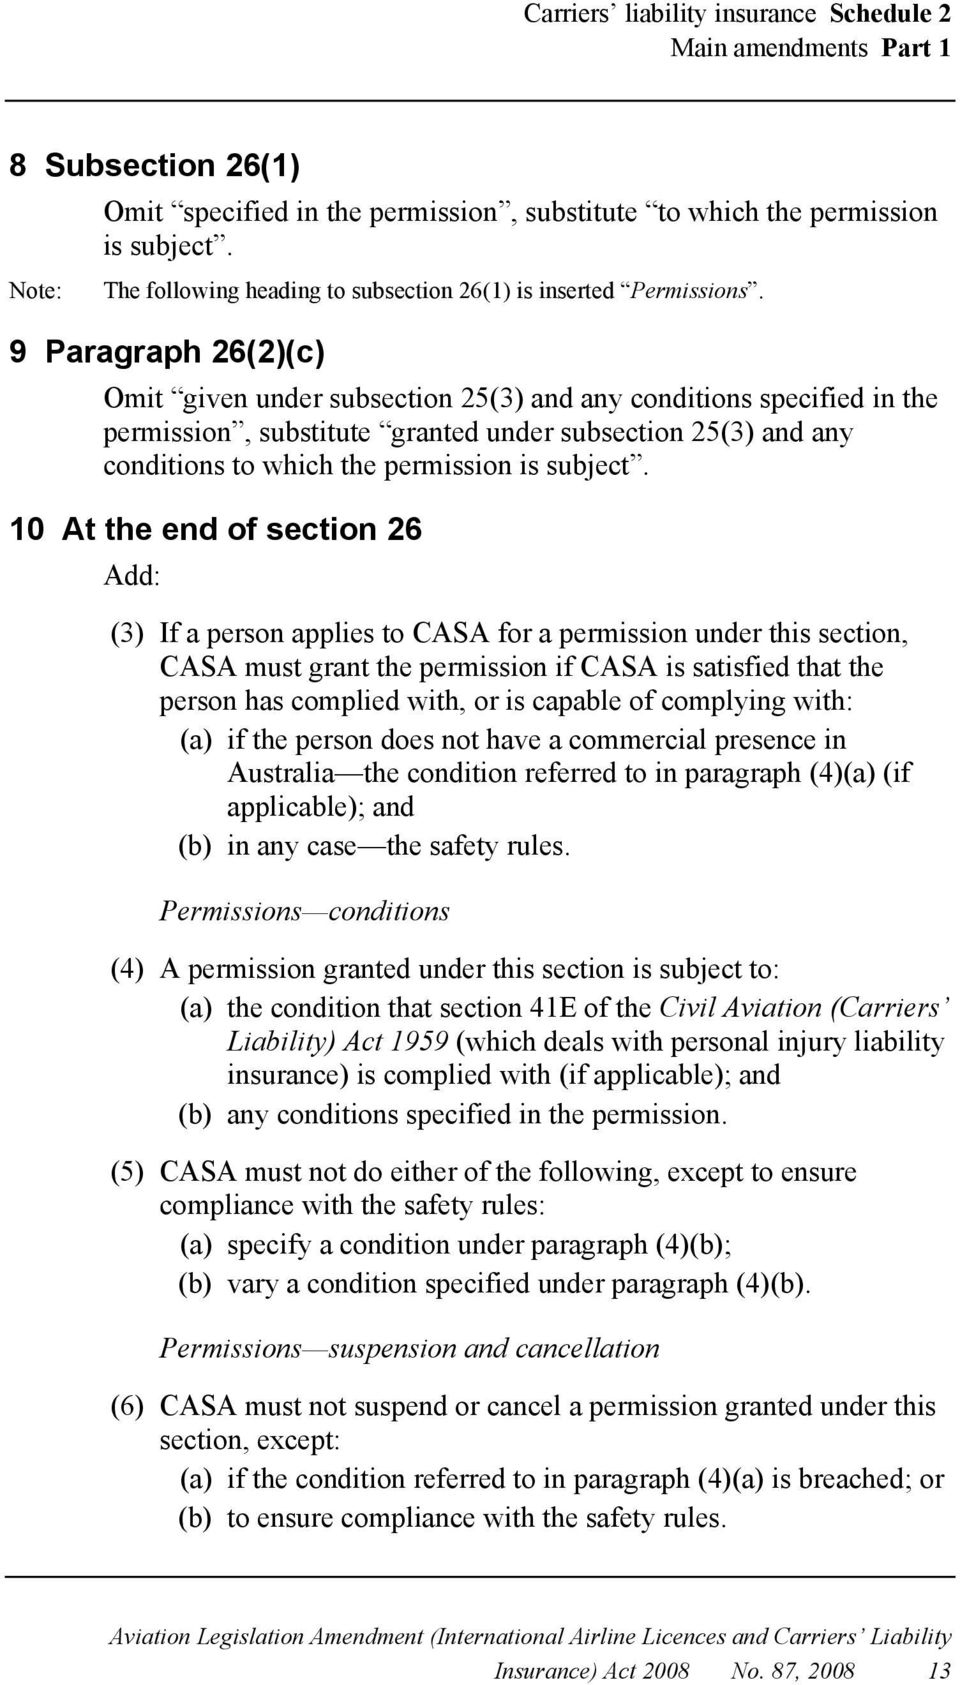 9 Paragraph 26(2)(c) Omit given under subsection 25(3) and any conditions specified in the permission, substitute granted under subsection 25(3) and any conditions to which the permission is subject.